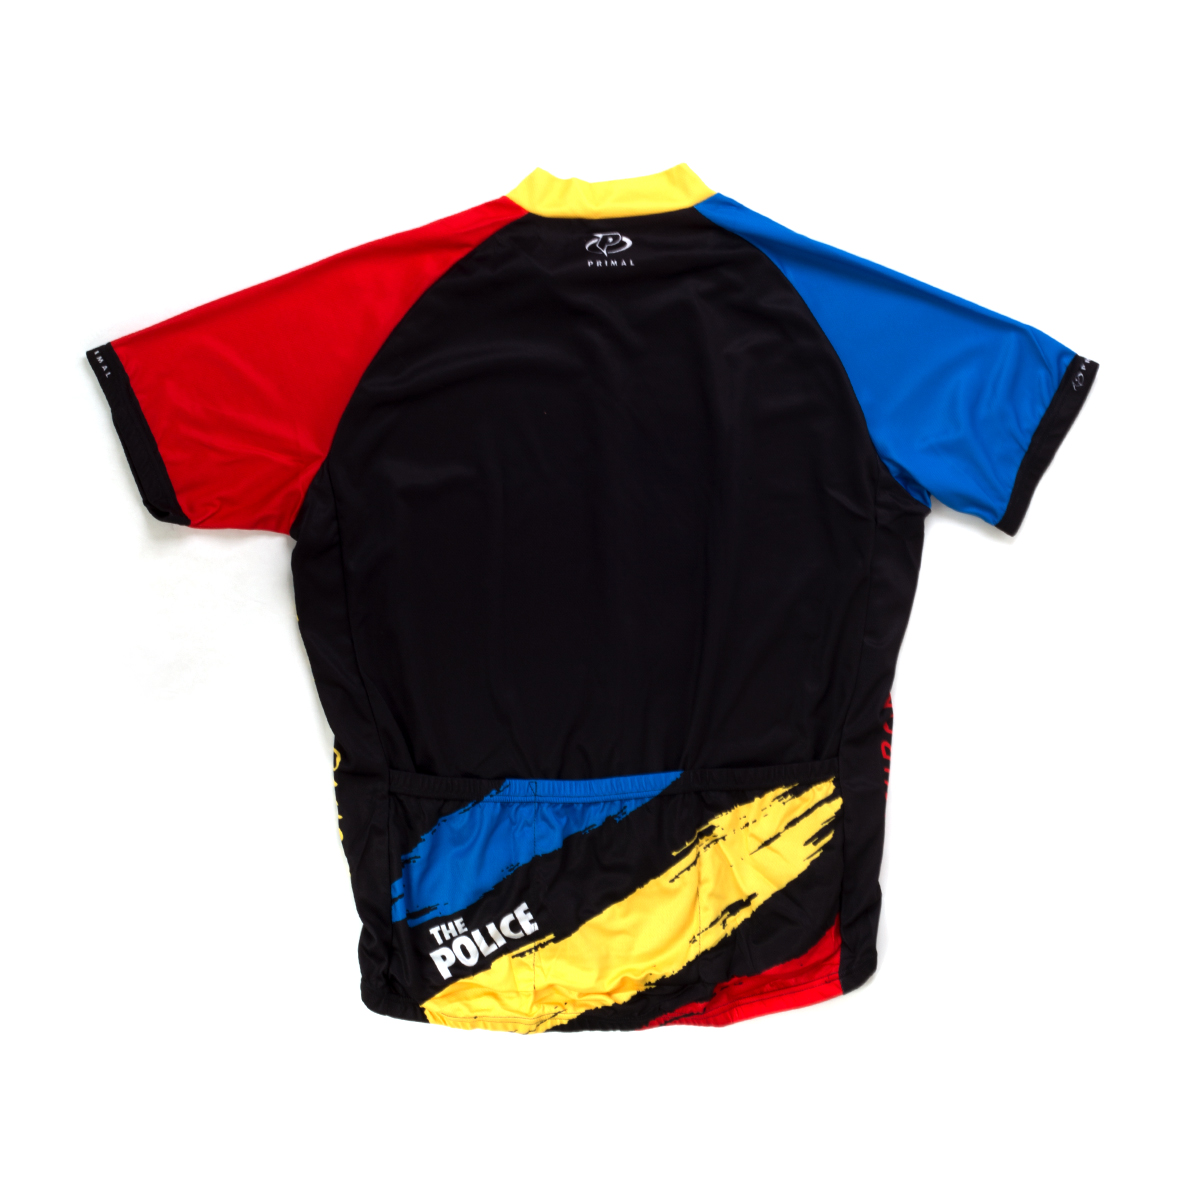 The Police Synchronicity Cycling Jersey